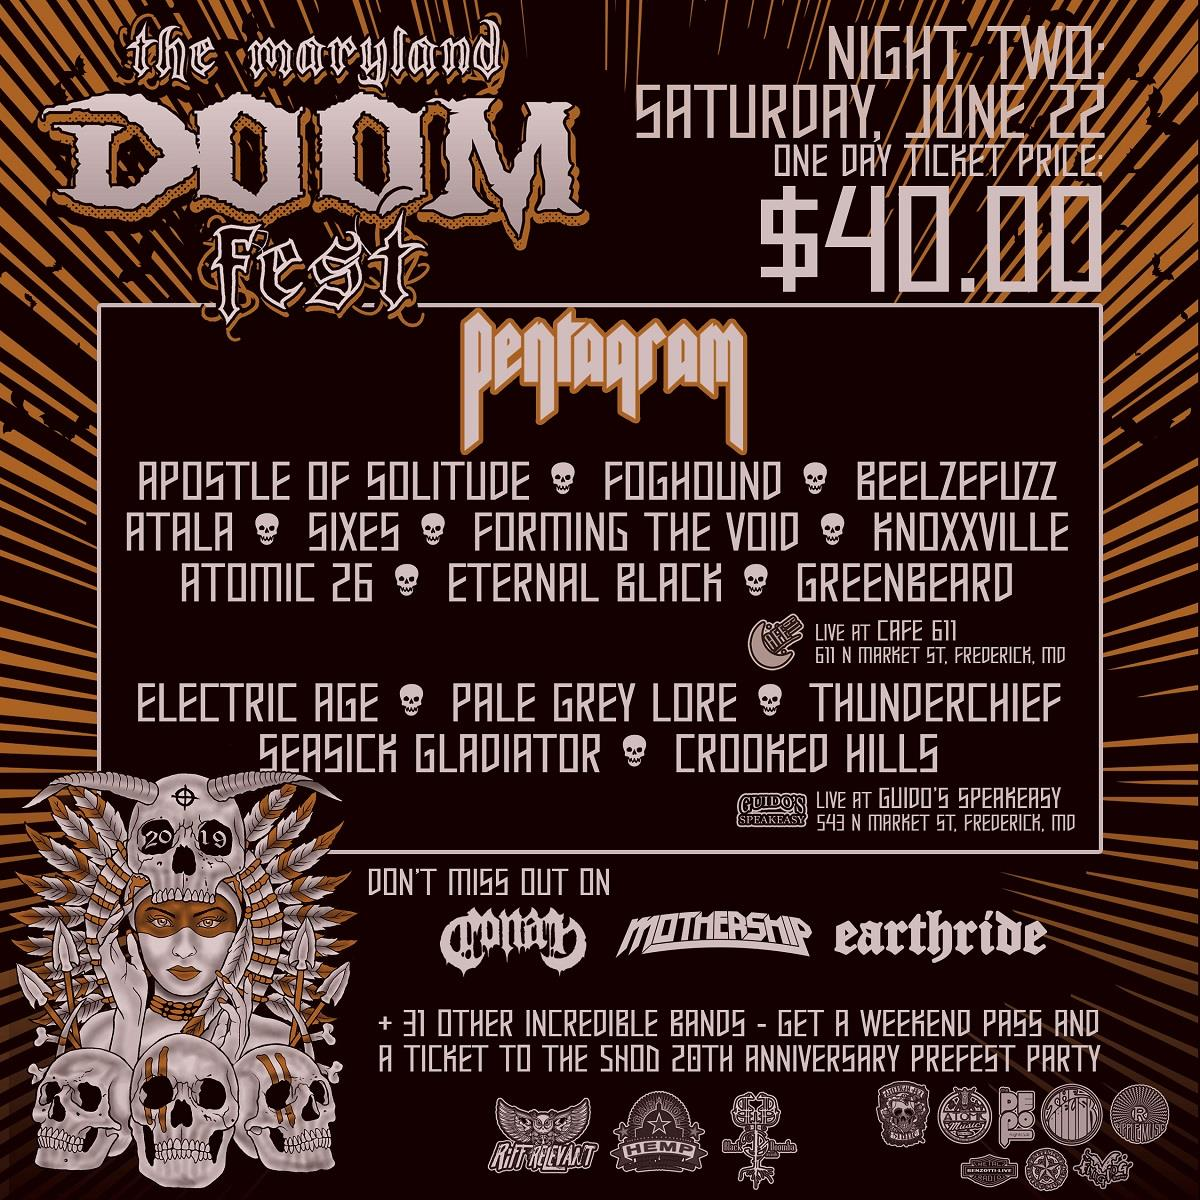 maryland doom fest 2019 night two poster